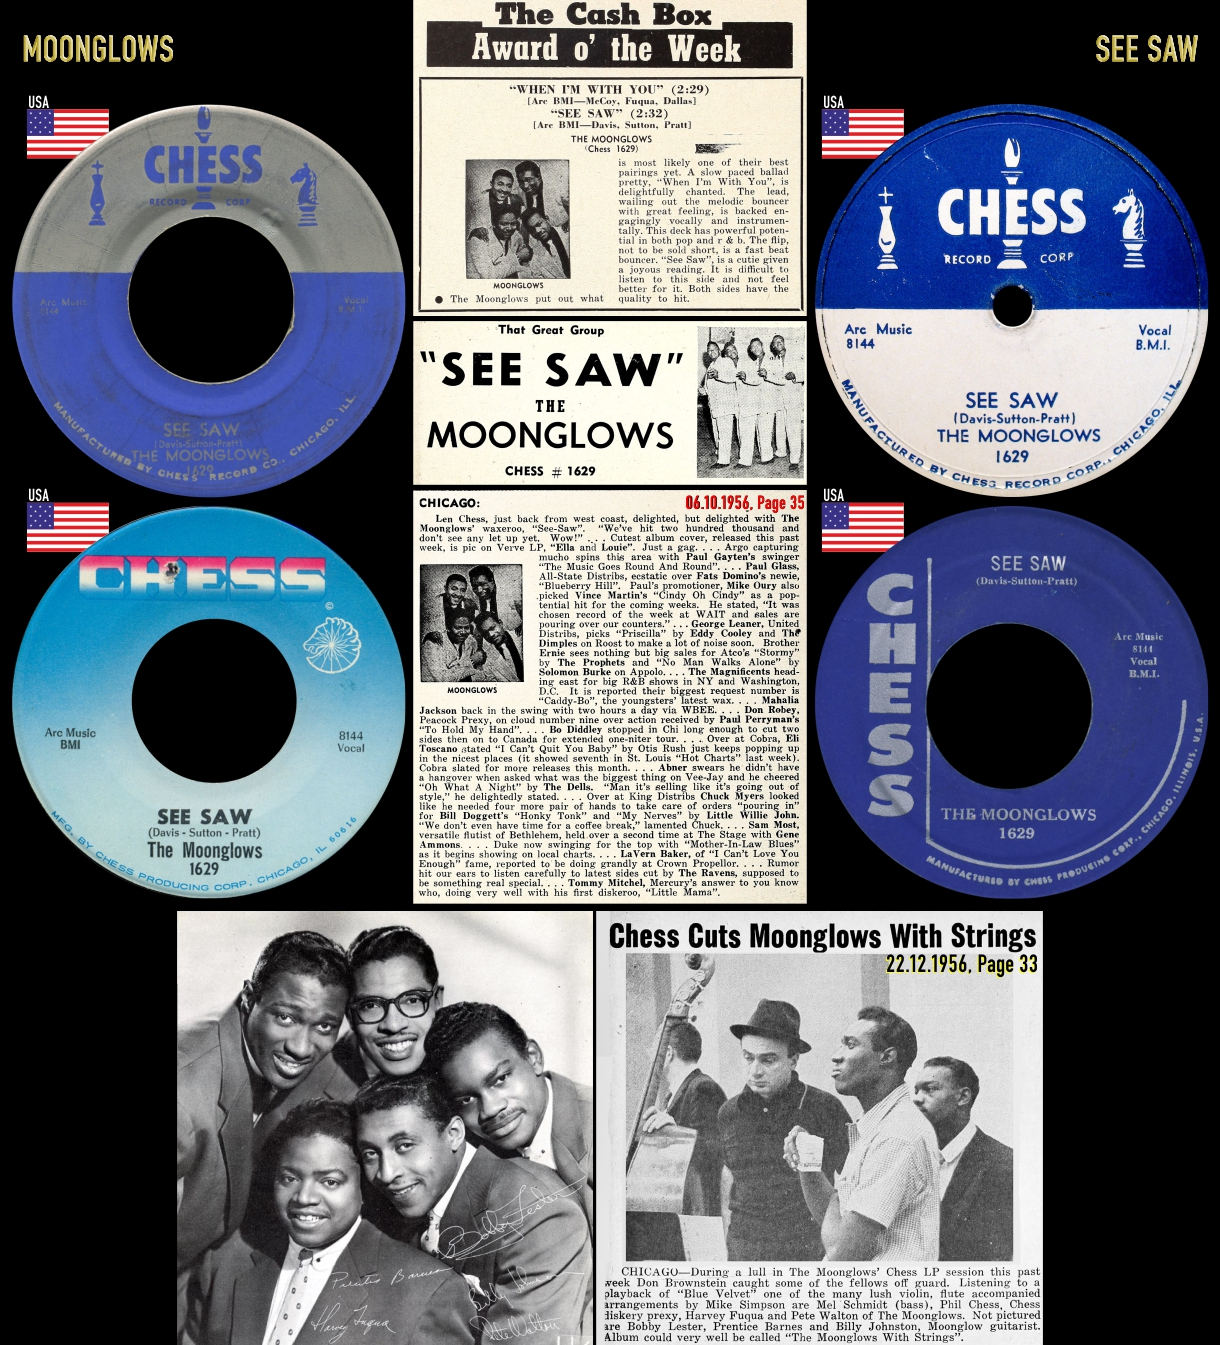 560901_Moonglows_See Saw